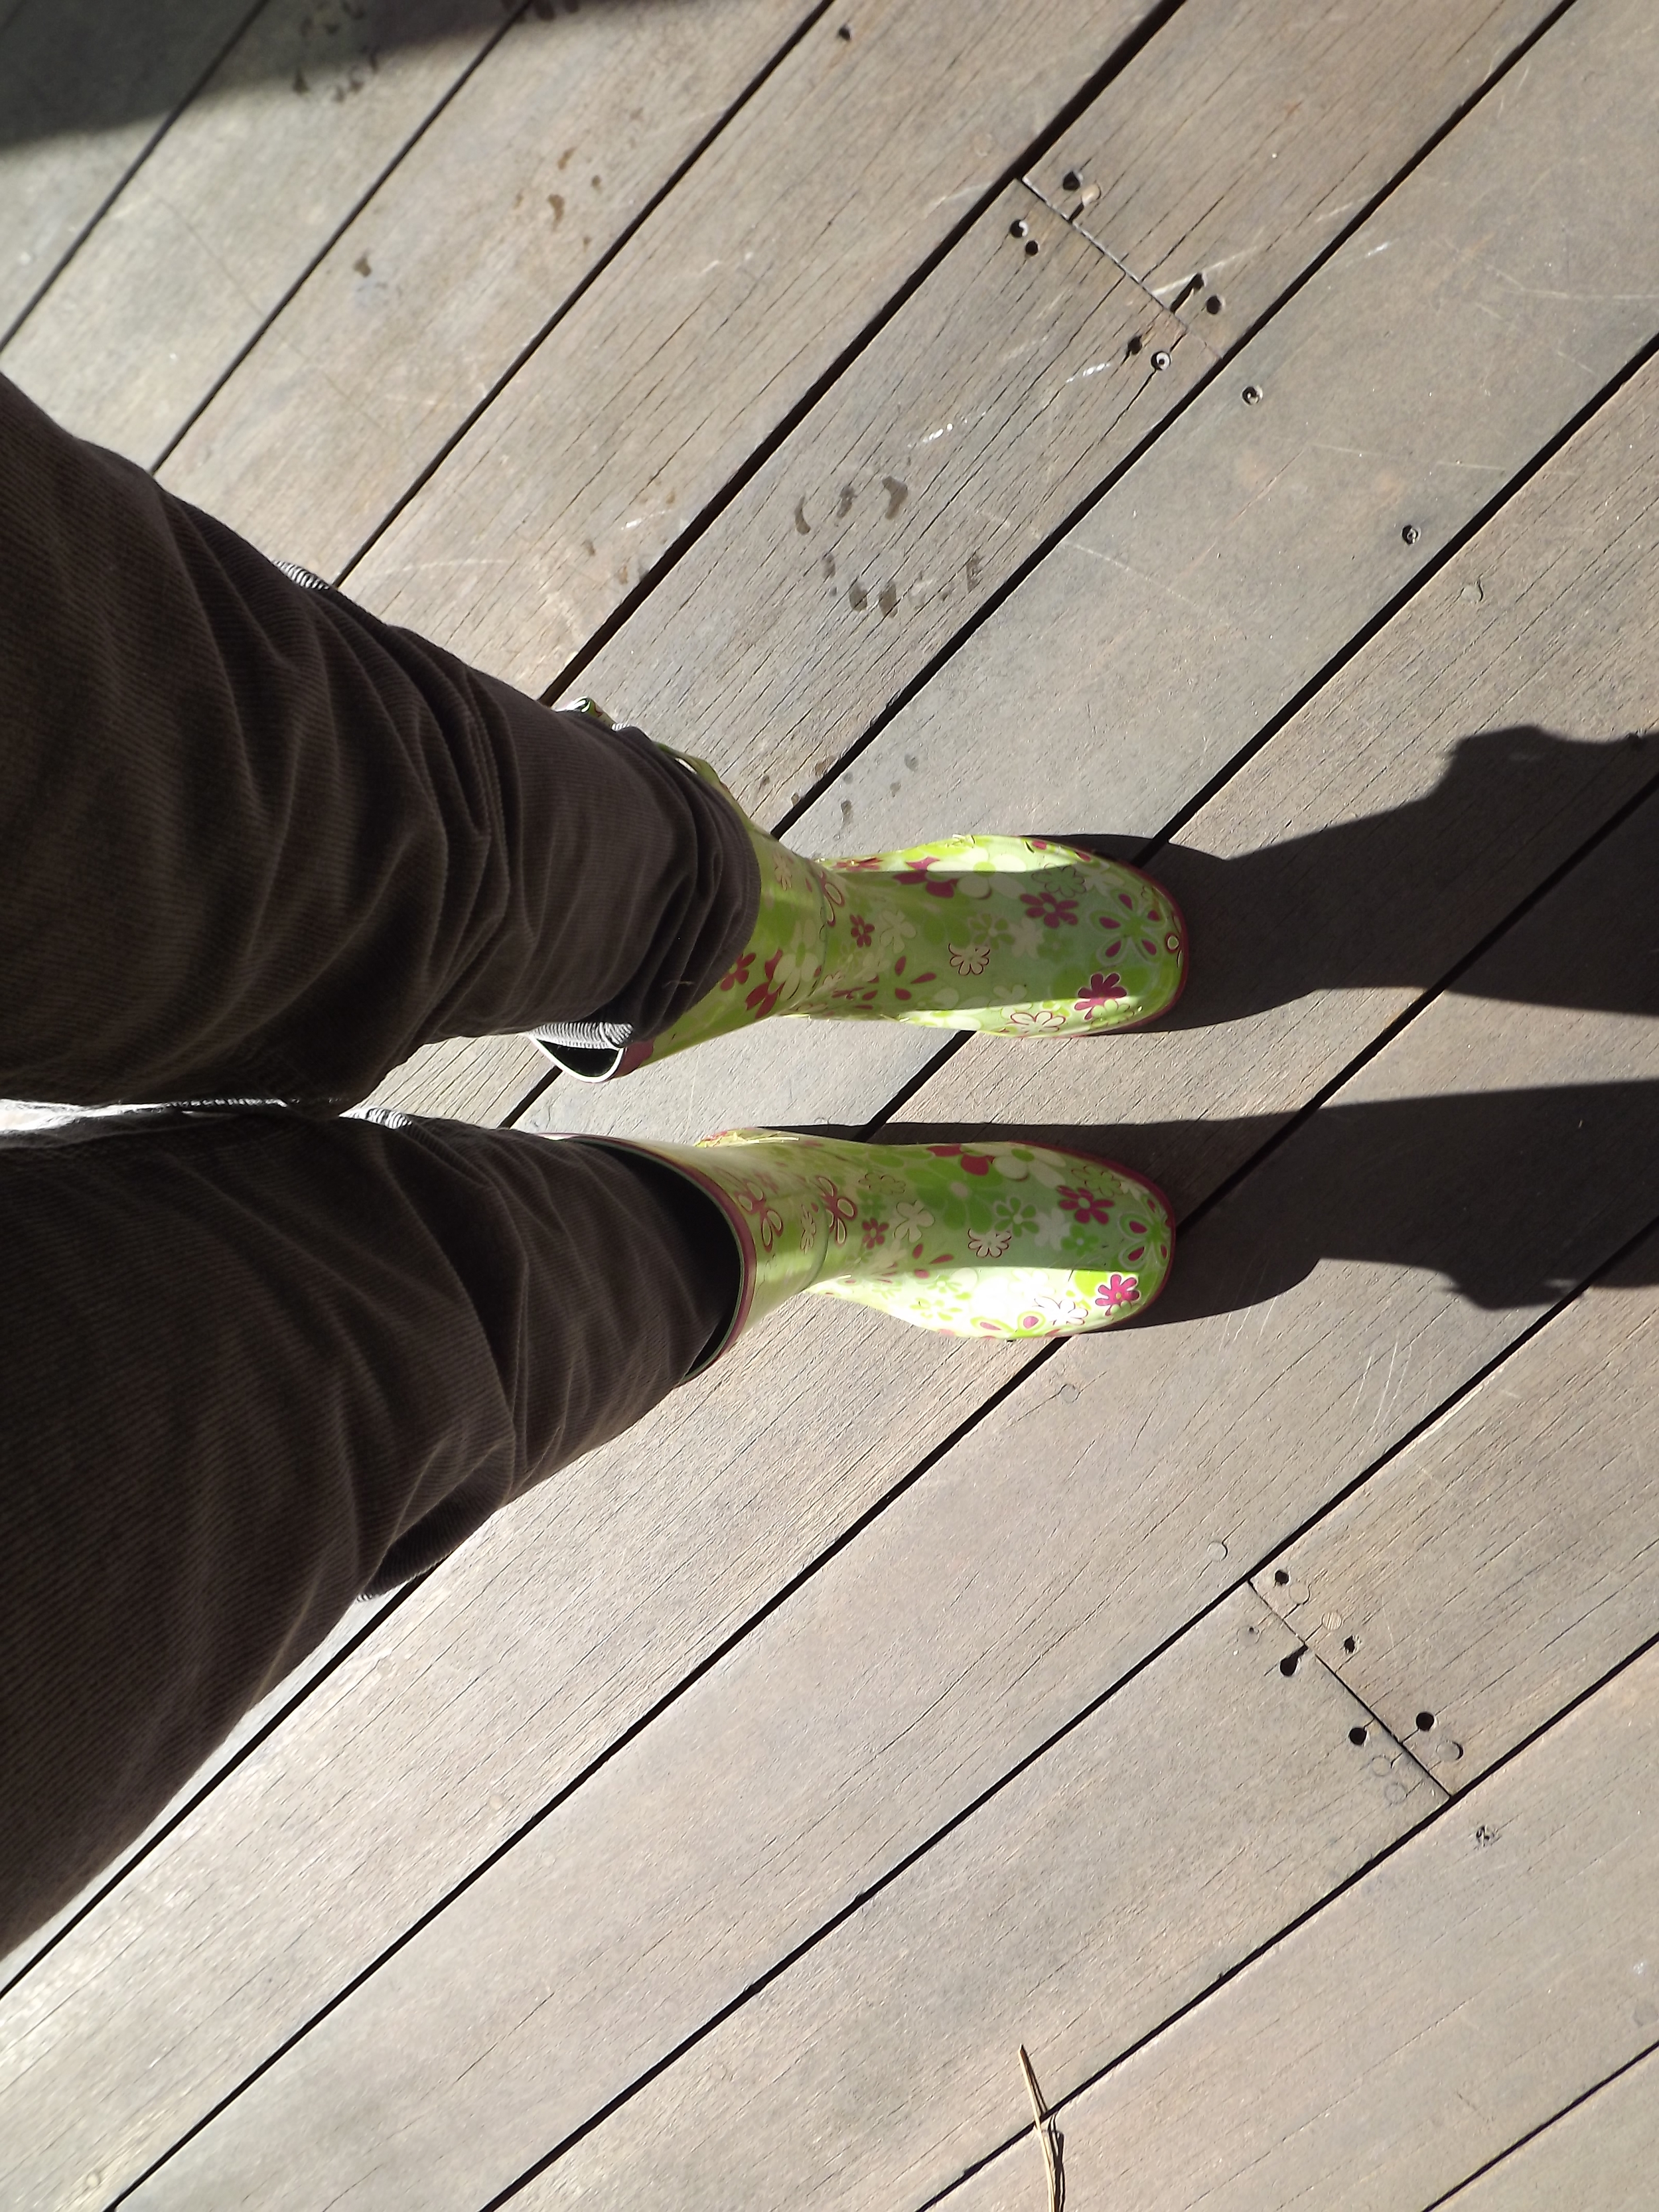 Rain boots from Target several years ago.